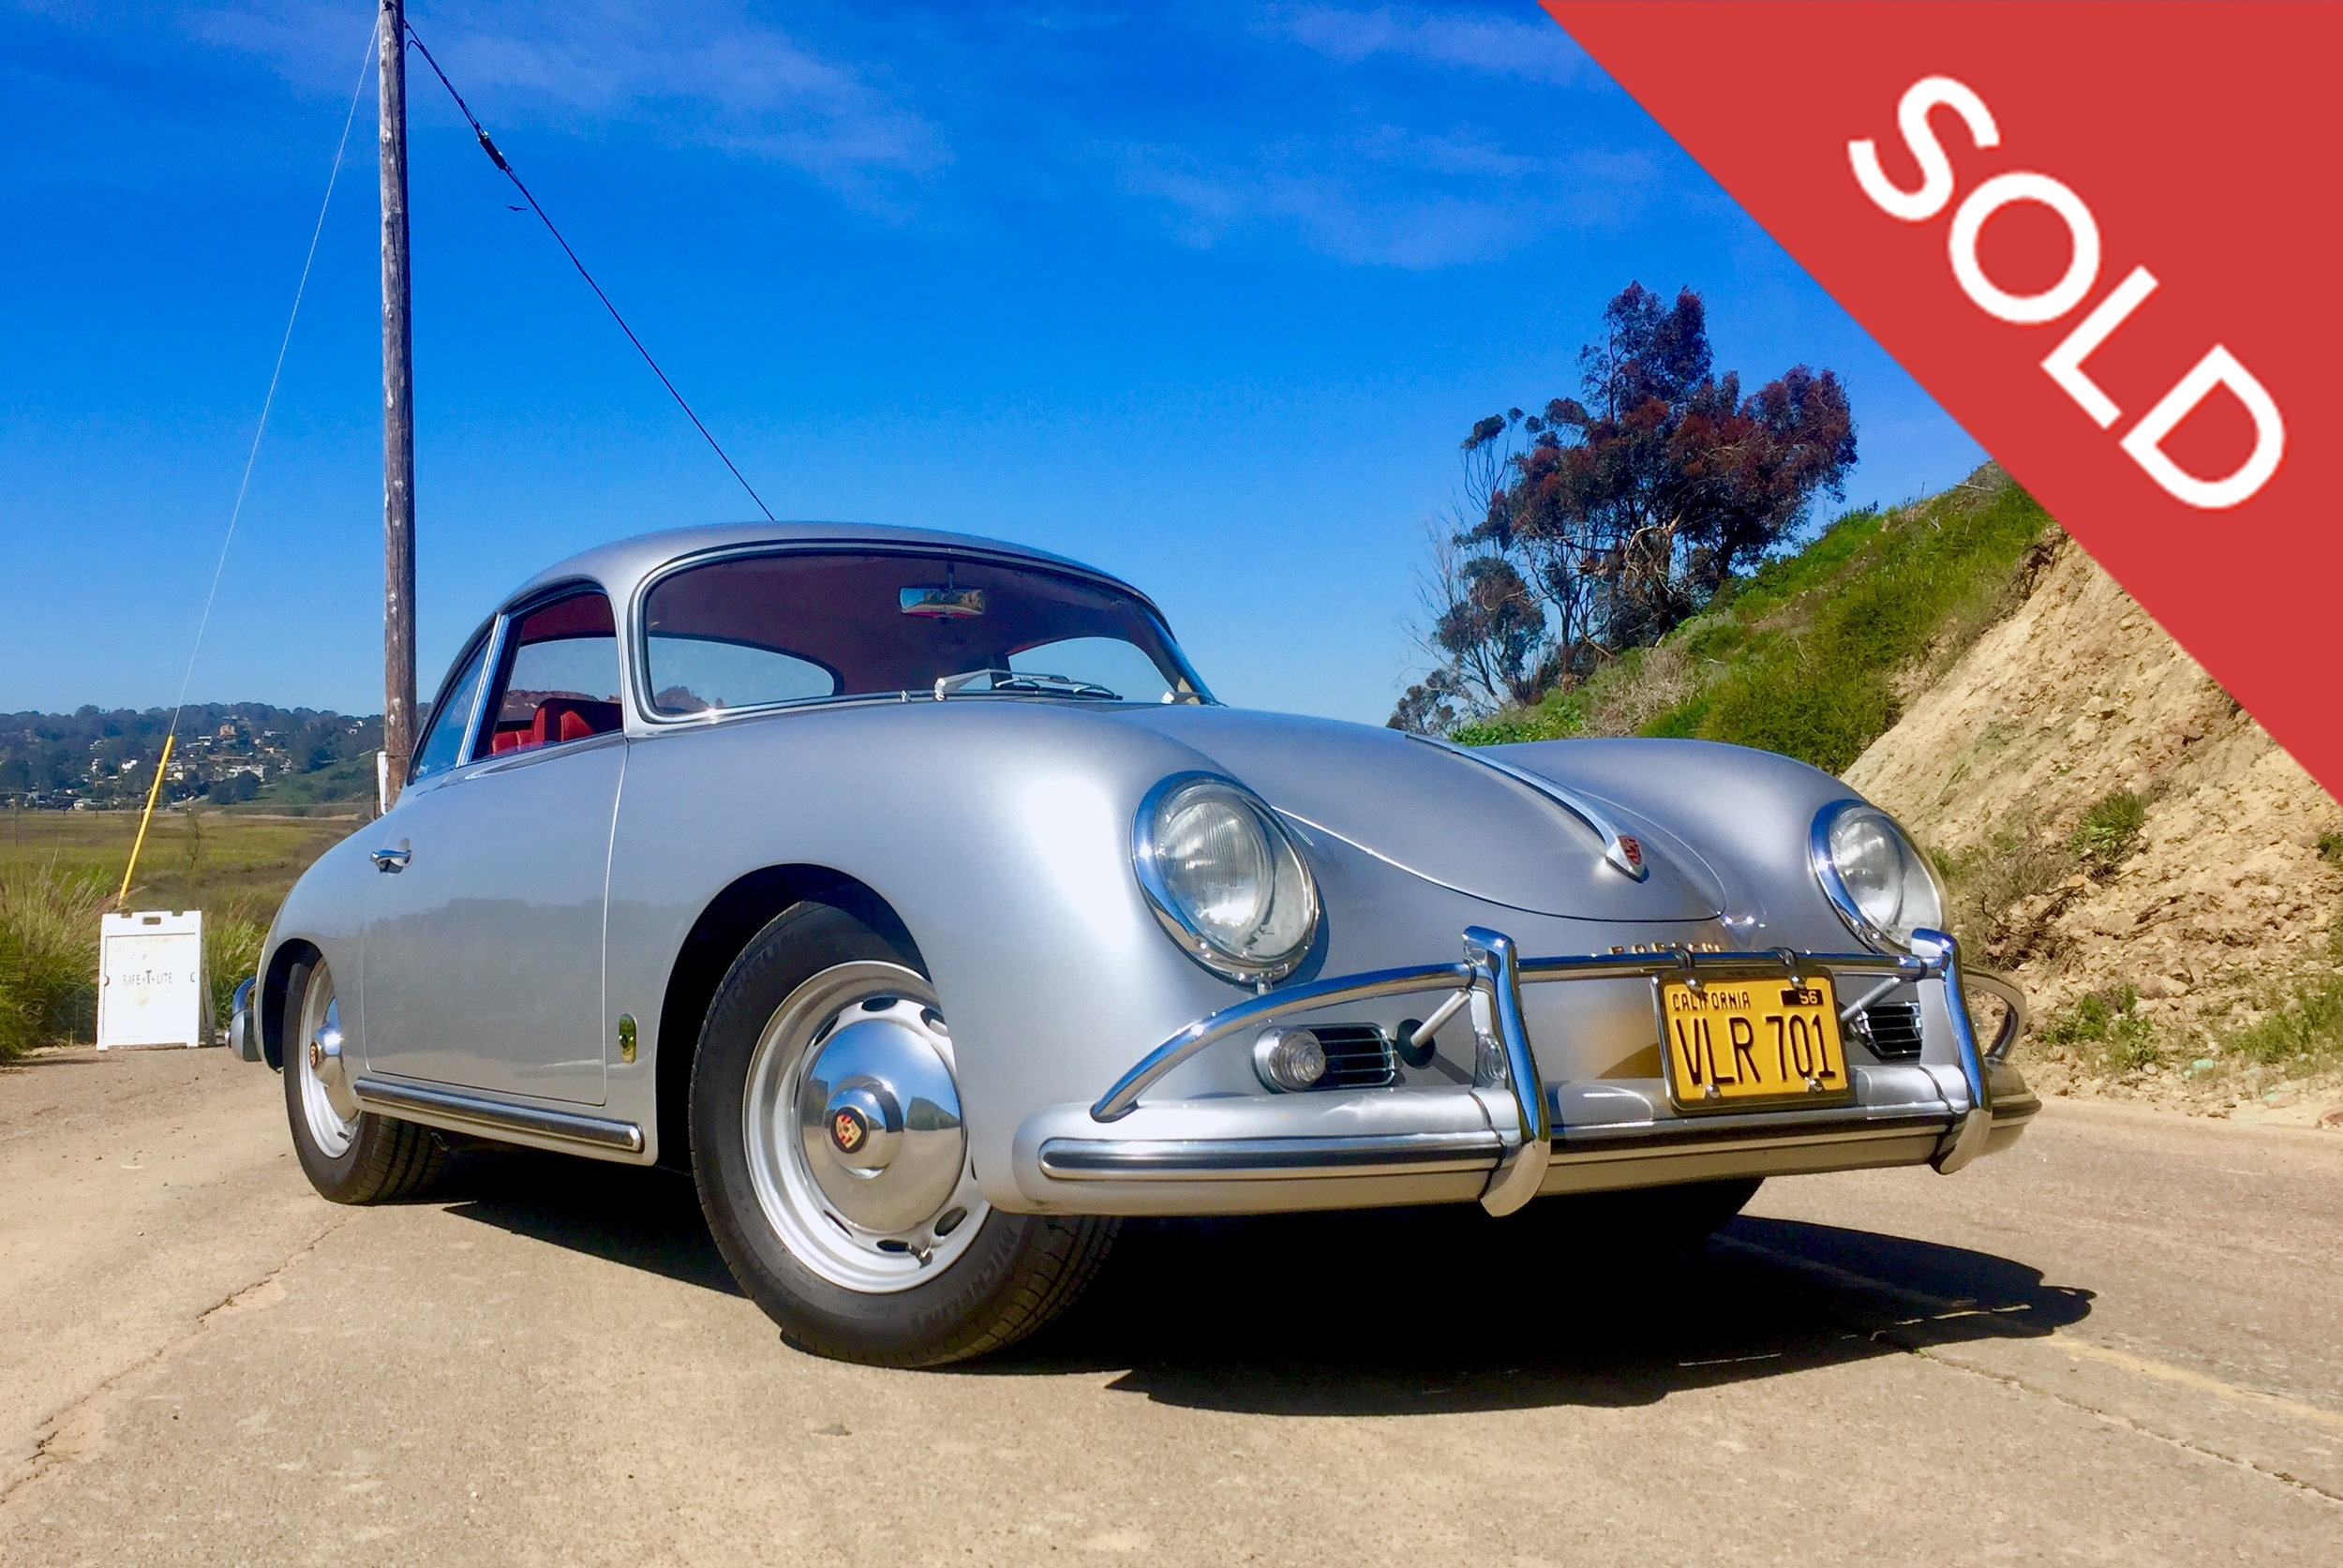 1959 Porsche 356a coupe - sold 7/26/2017